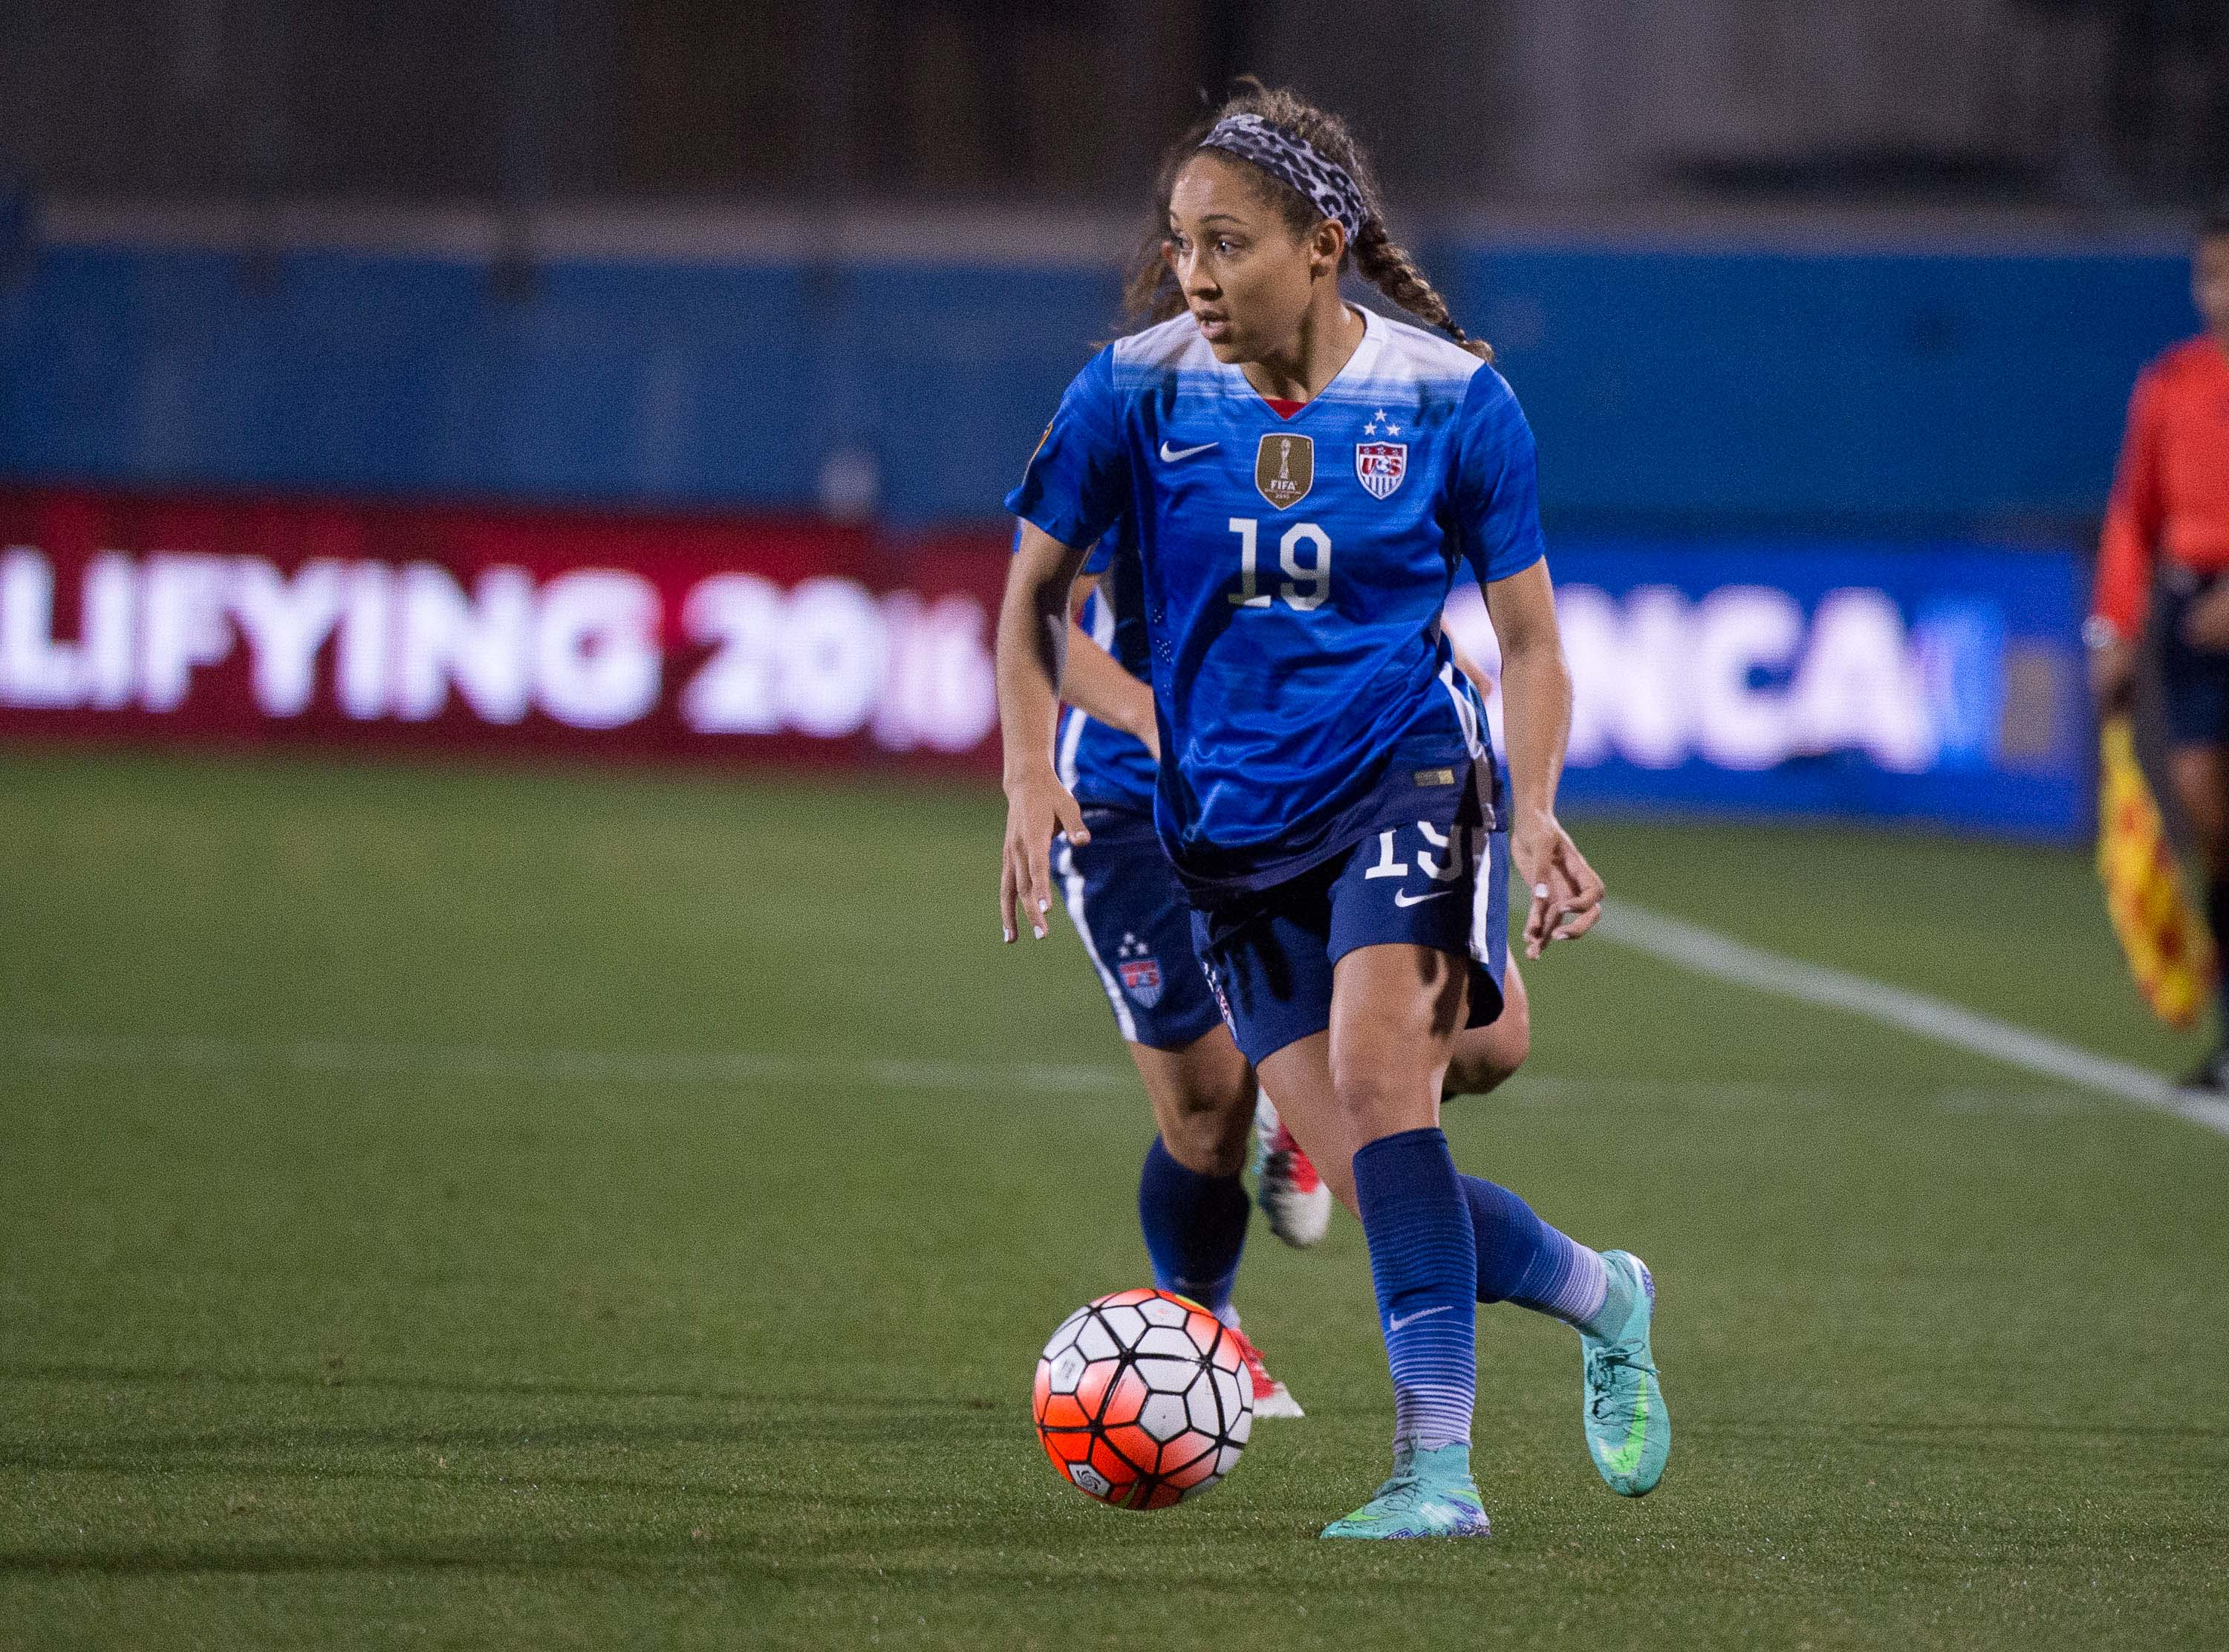 83b606c60 Christian soccer player who refused to wear pride jersey not on U.S. World  Cup roster